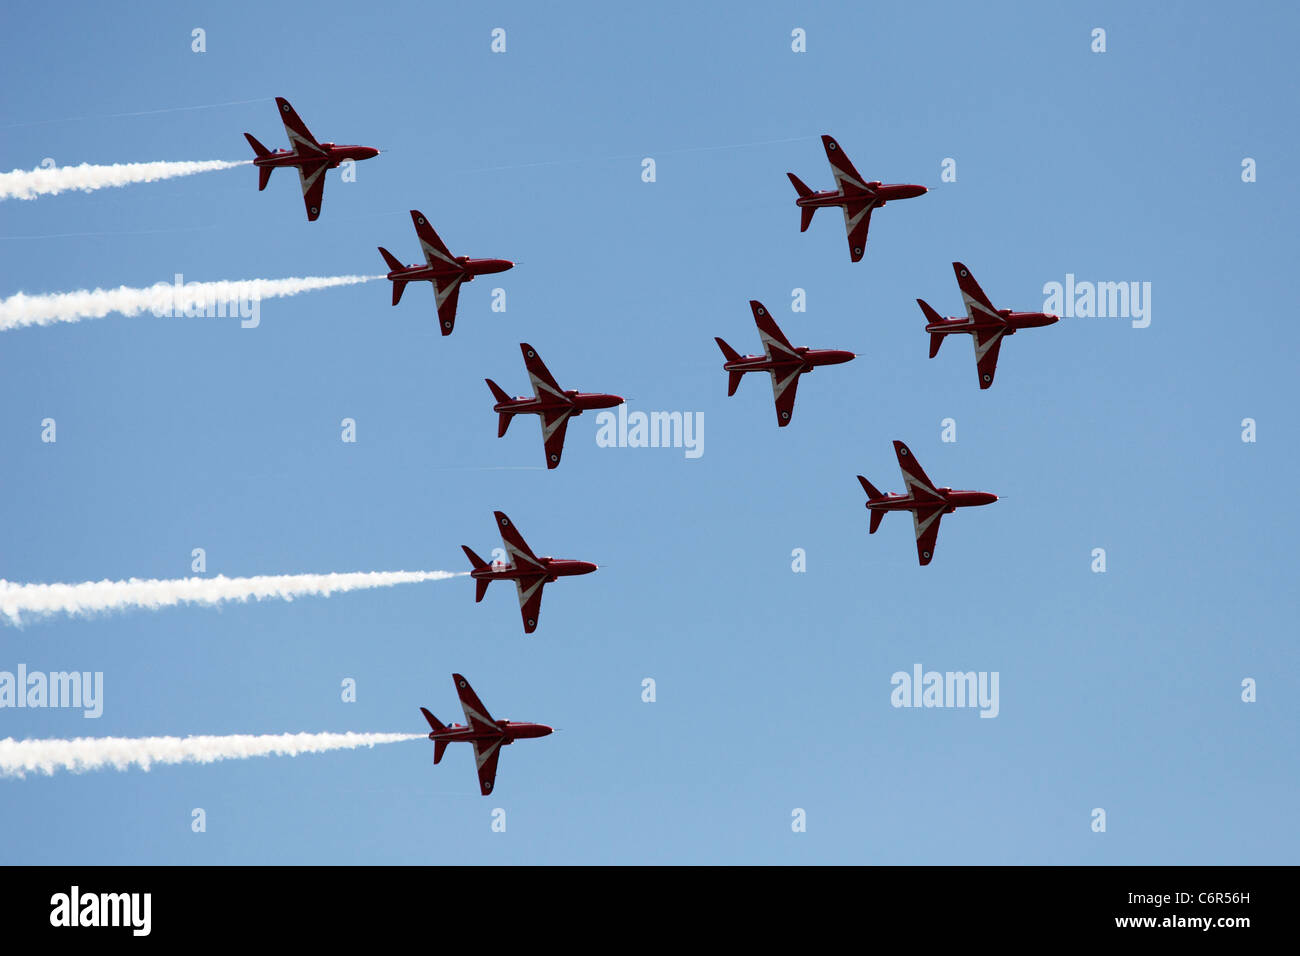 'Red Arrows' Hawk T1 jets flying in Viggen formation against blue sky, England, UK - Stock Image